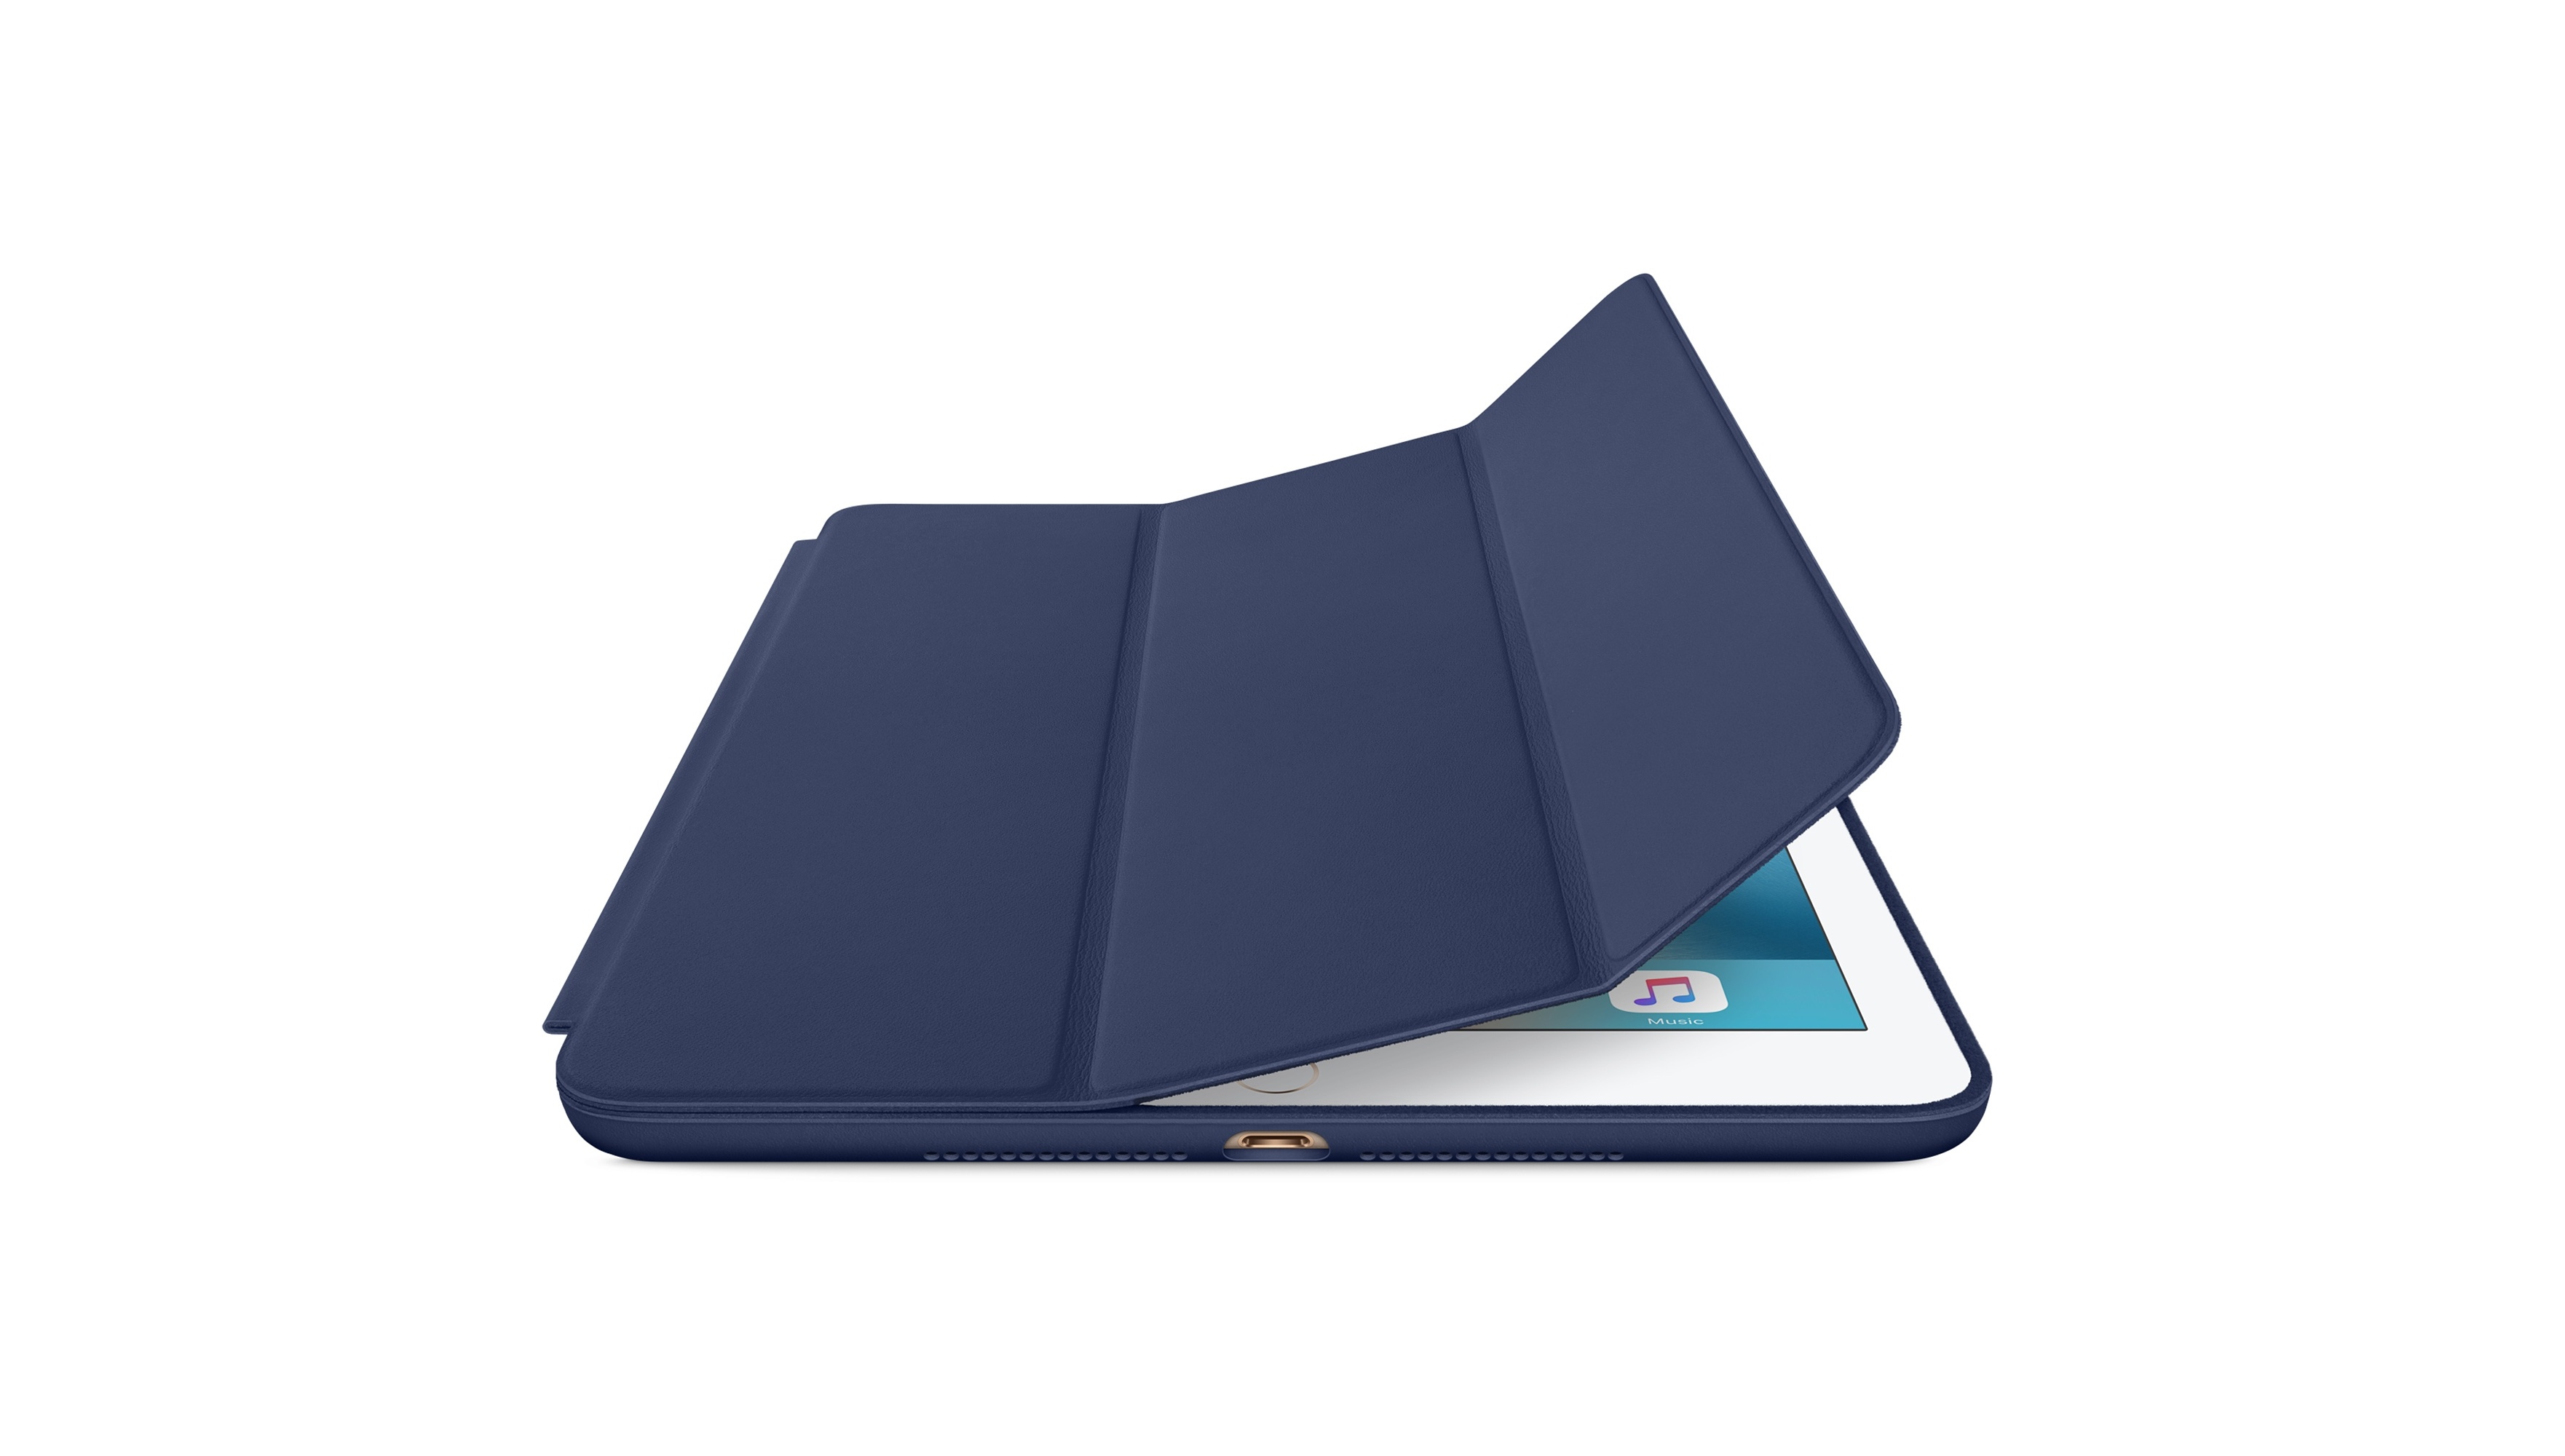 2018's Best iPad Air 2 Cases and Covers - 10 Stylish iPad ...